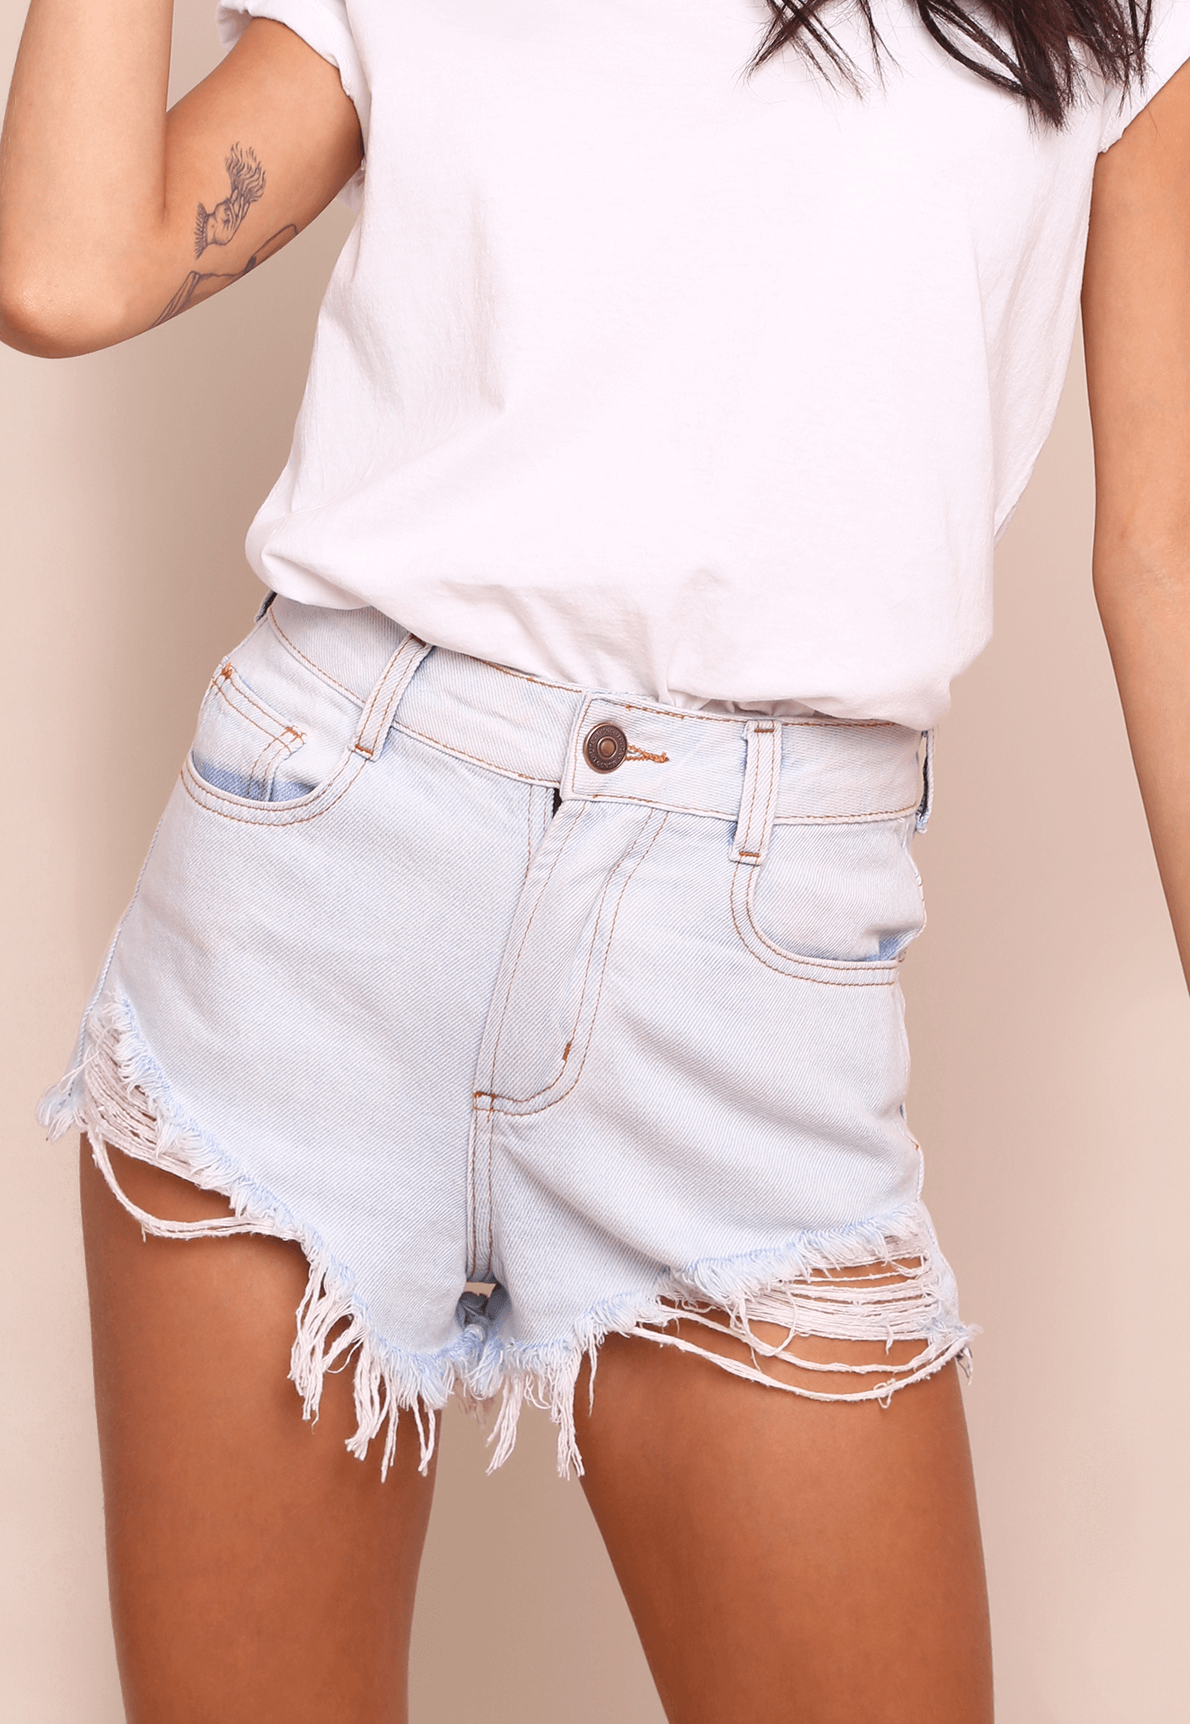 32573-shorts-jeans-wash-denim-mundo-lolita-02